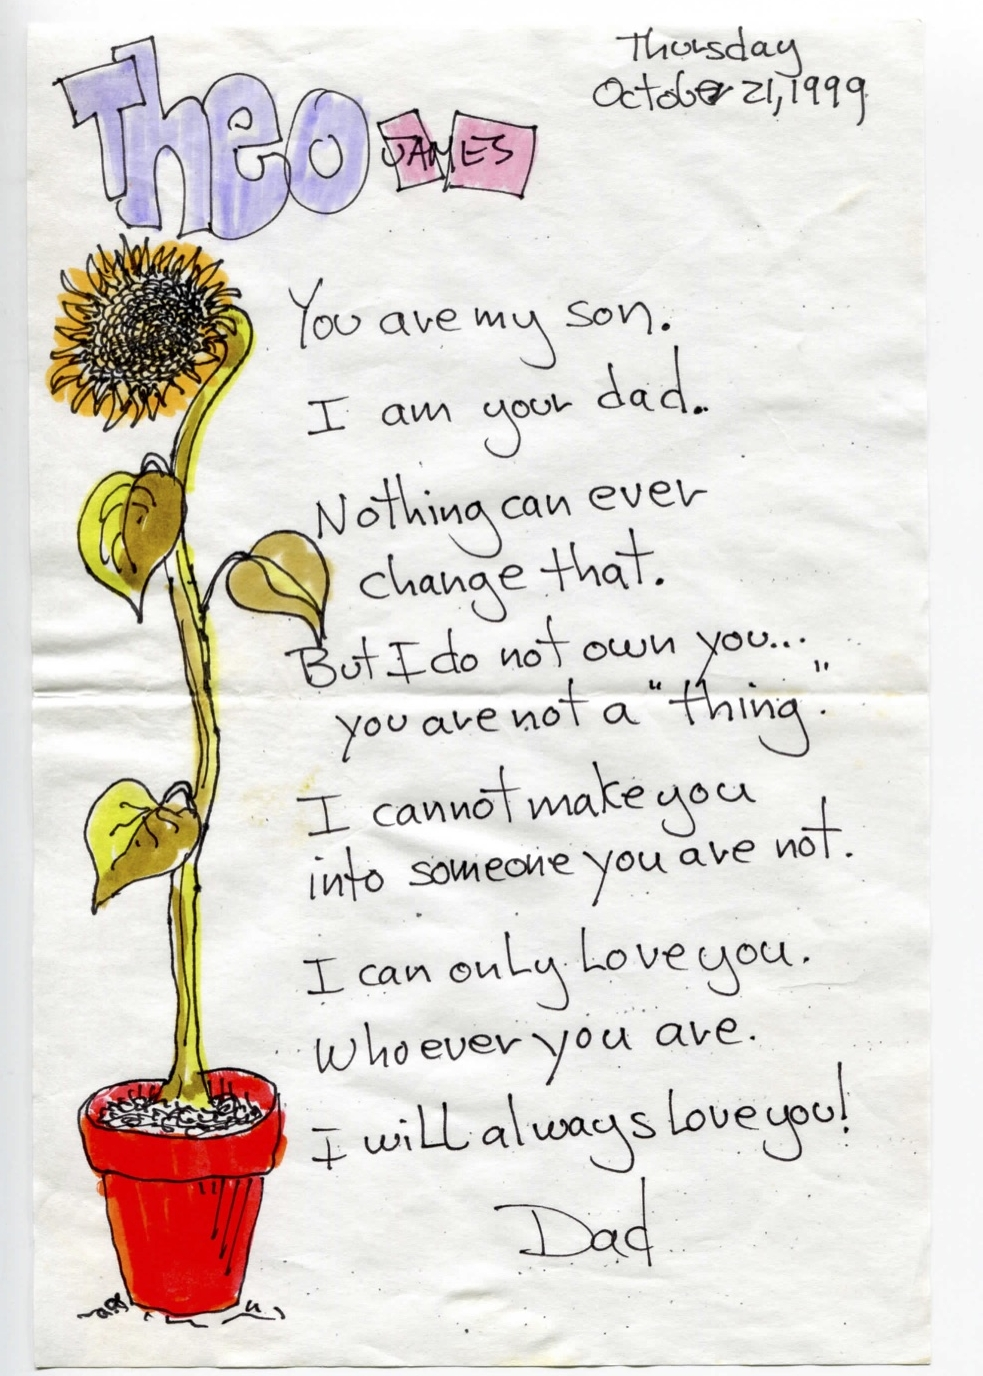 """You are my son. I am your dad. Nothing can ever change that. But I do not own you... You are not a """"thing."""" I cannot make you into someone you are not. I can only love you. Whoever you are. I will always love you!"""